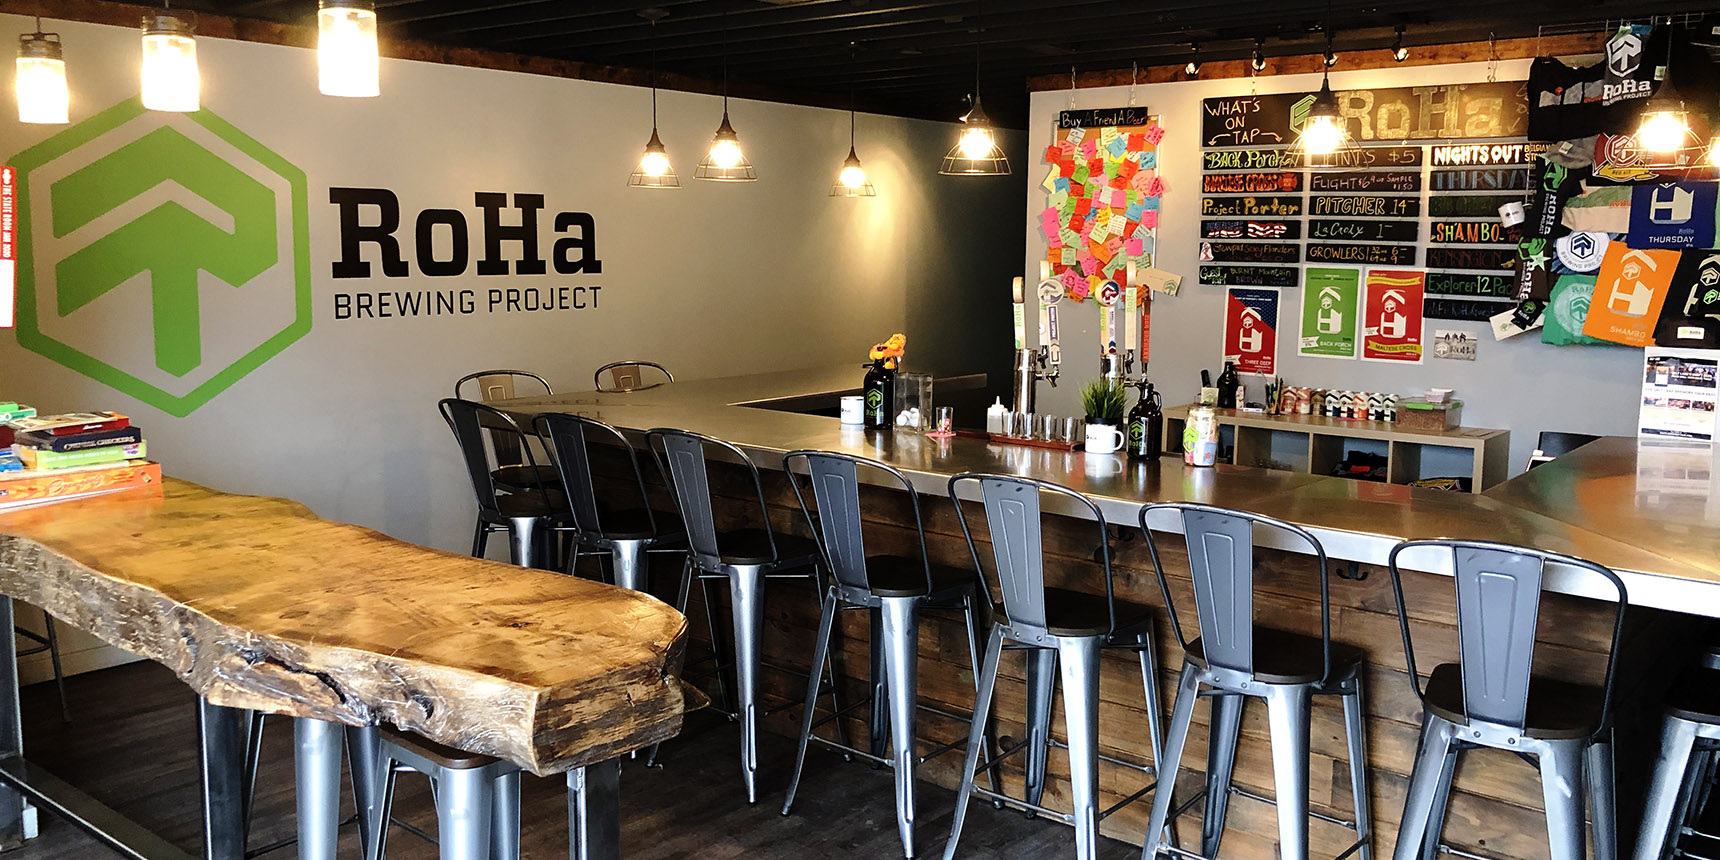 RoHa Brewing Project - Featured - Taproom - Utah Beer News